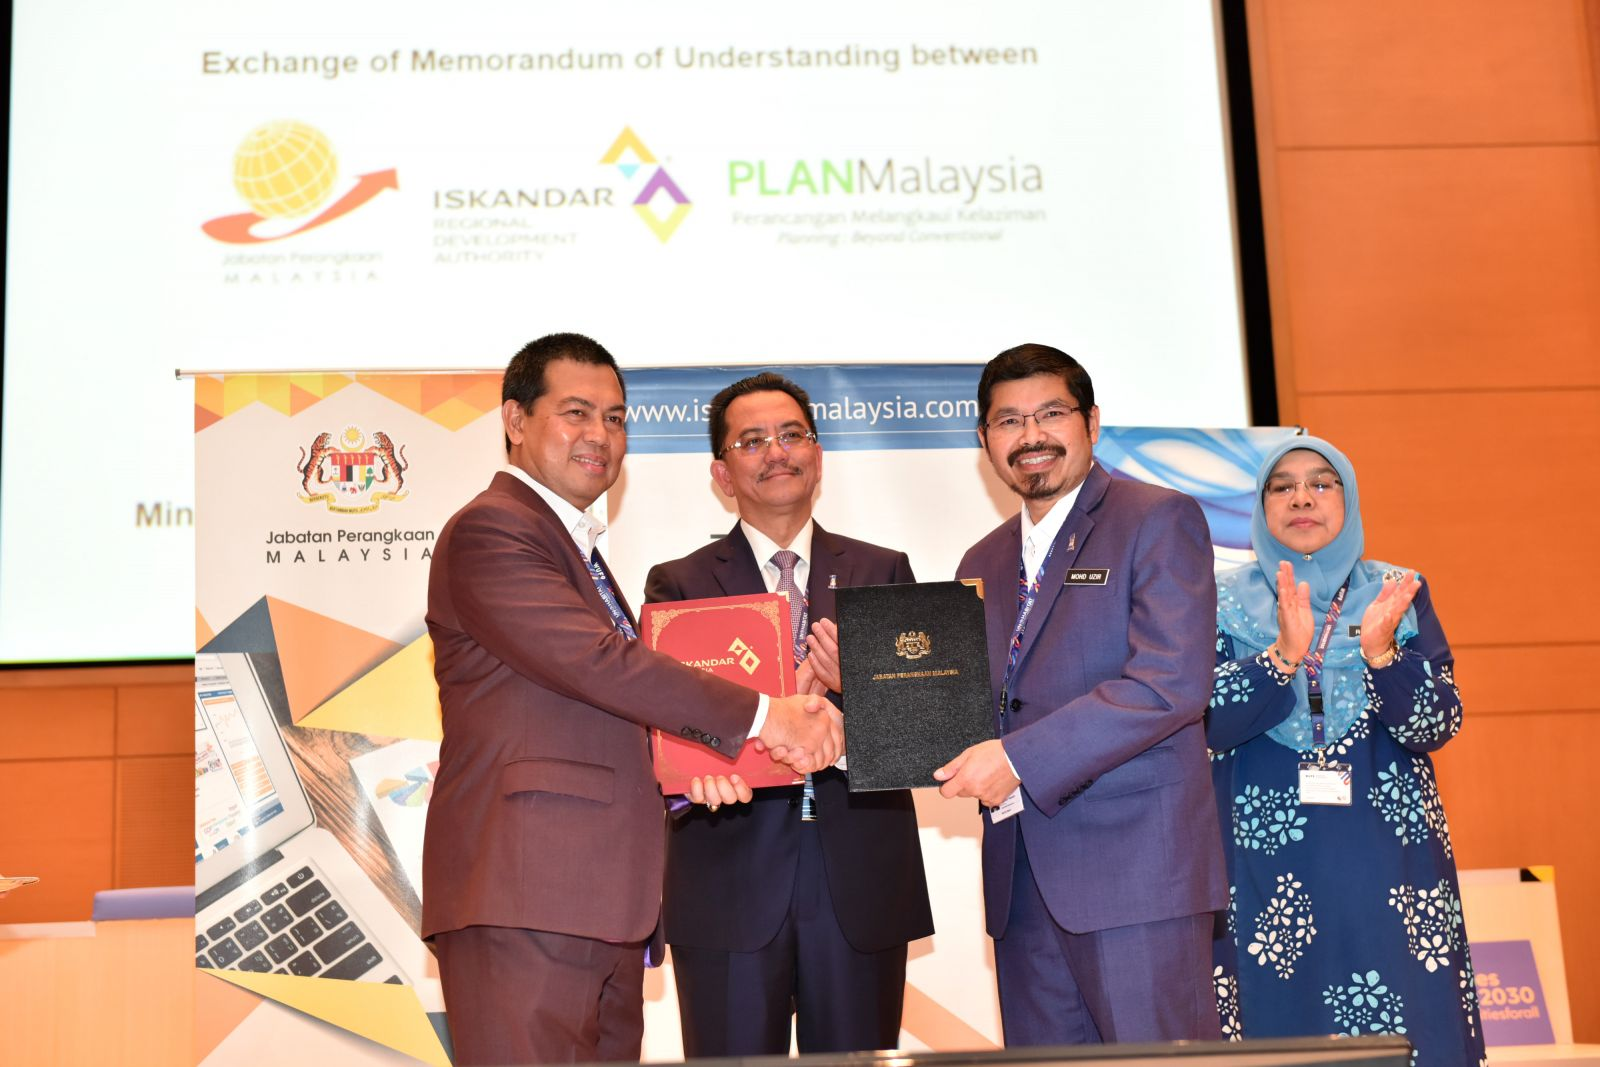 The MOU Exchange session between the DOSM and Iskandar Regional Development Authority (IRDA)